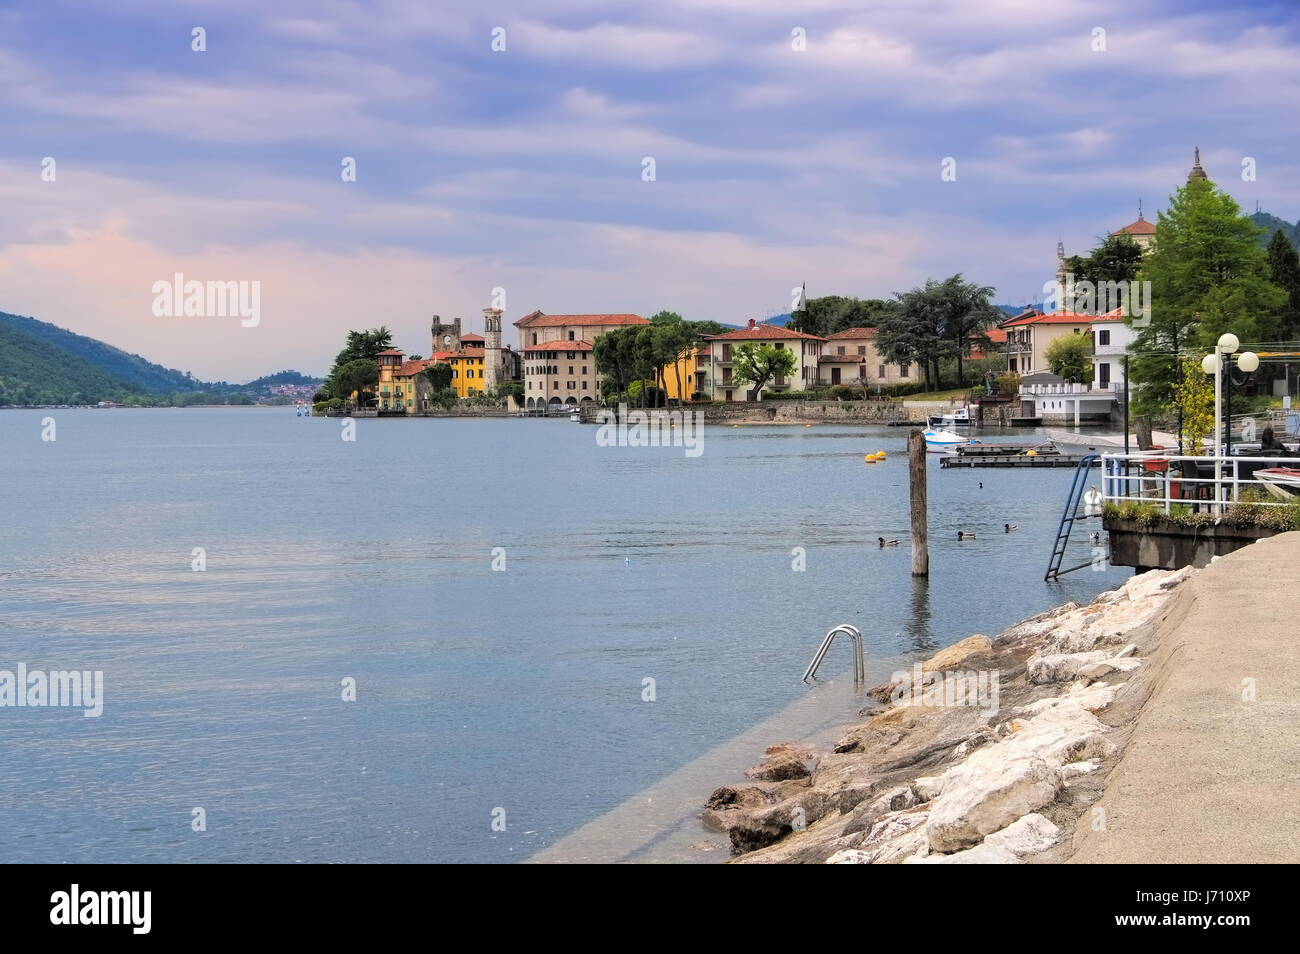 Predore Iseo lake, Lombardy in Italy - Stock Image